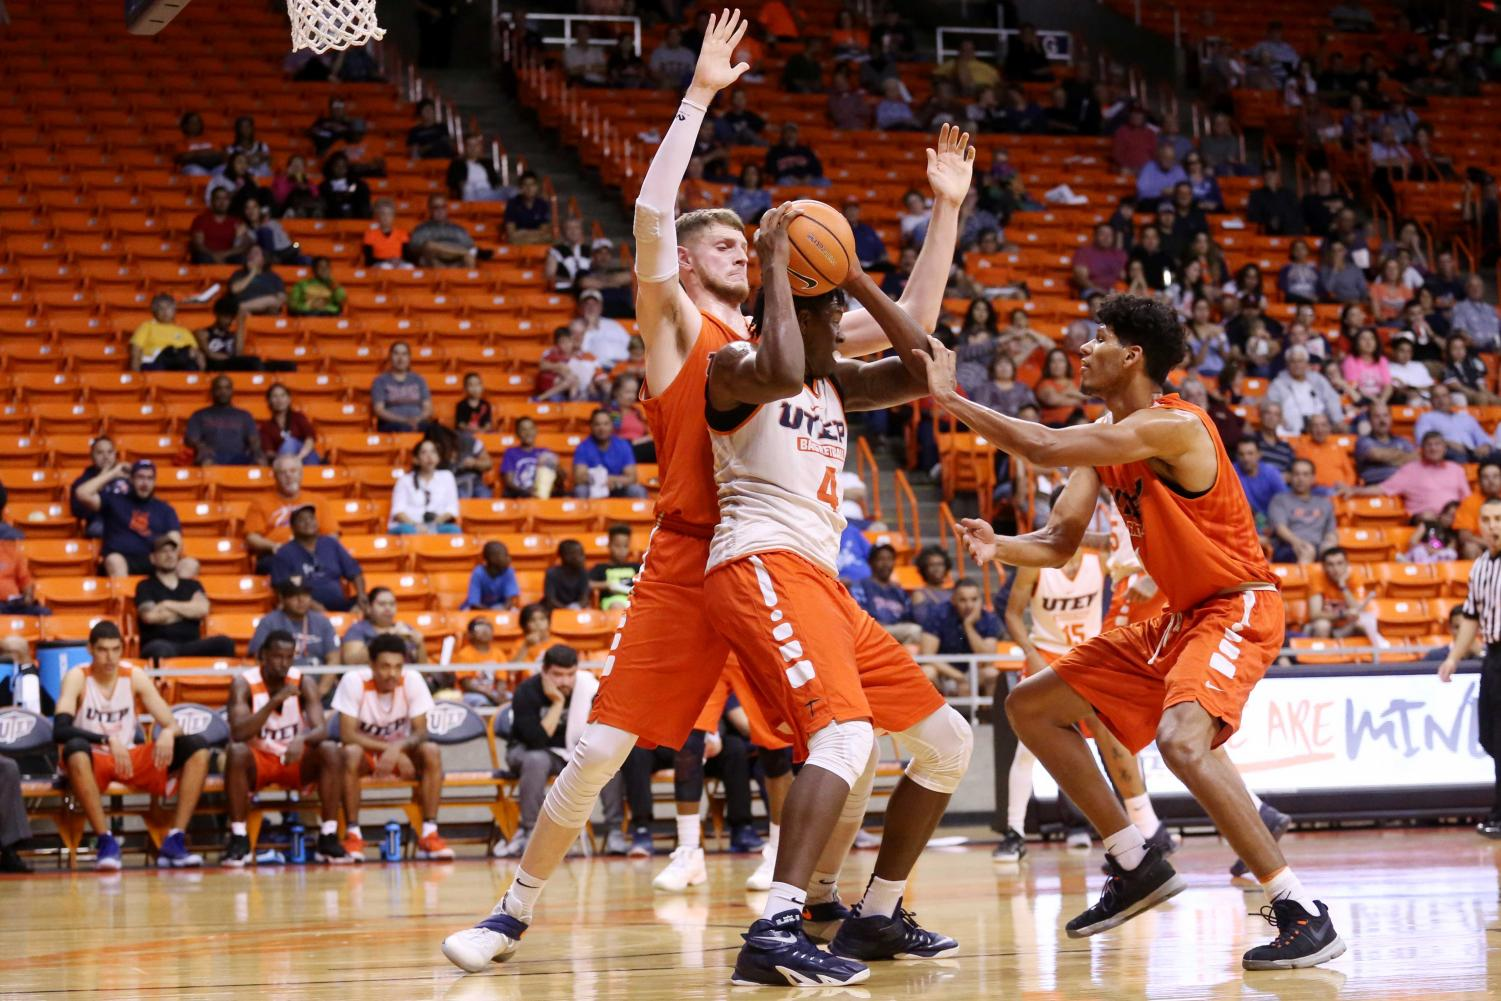 The UTEP men's basketball team will take the court against another opponent for the first time this season against Sul Ross State on Oct. 28..